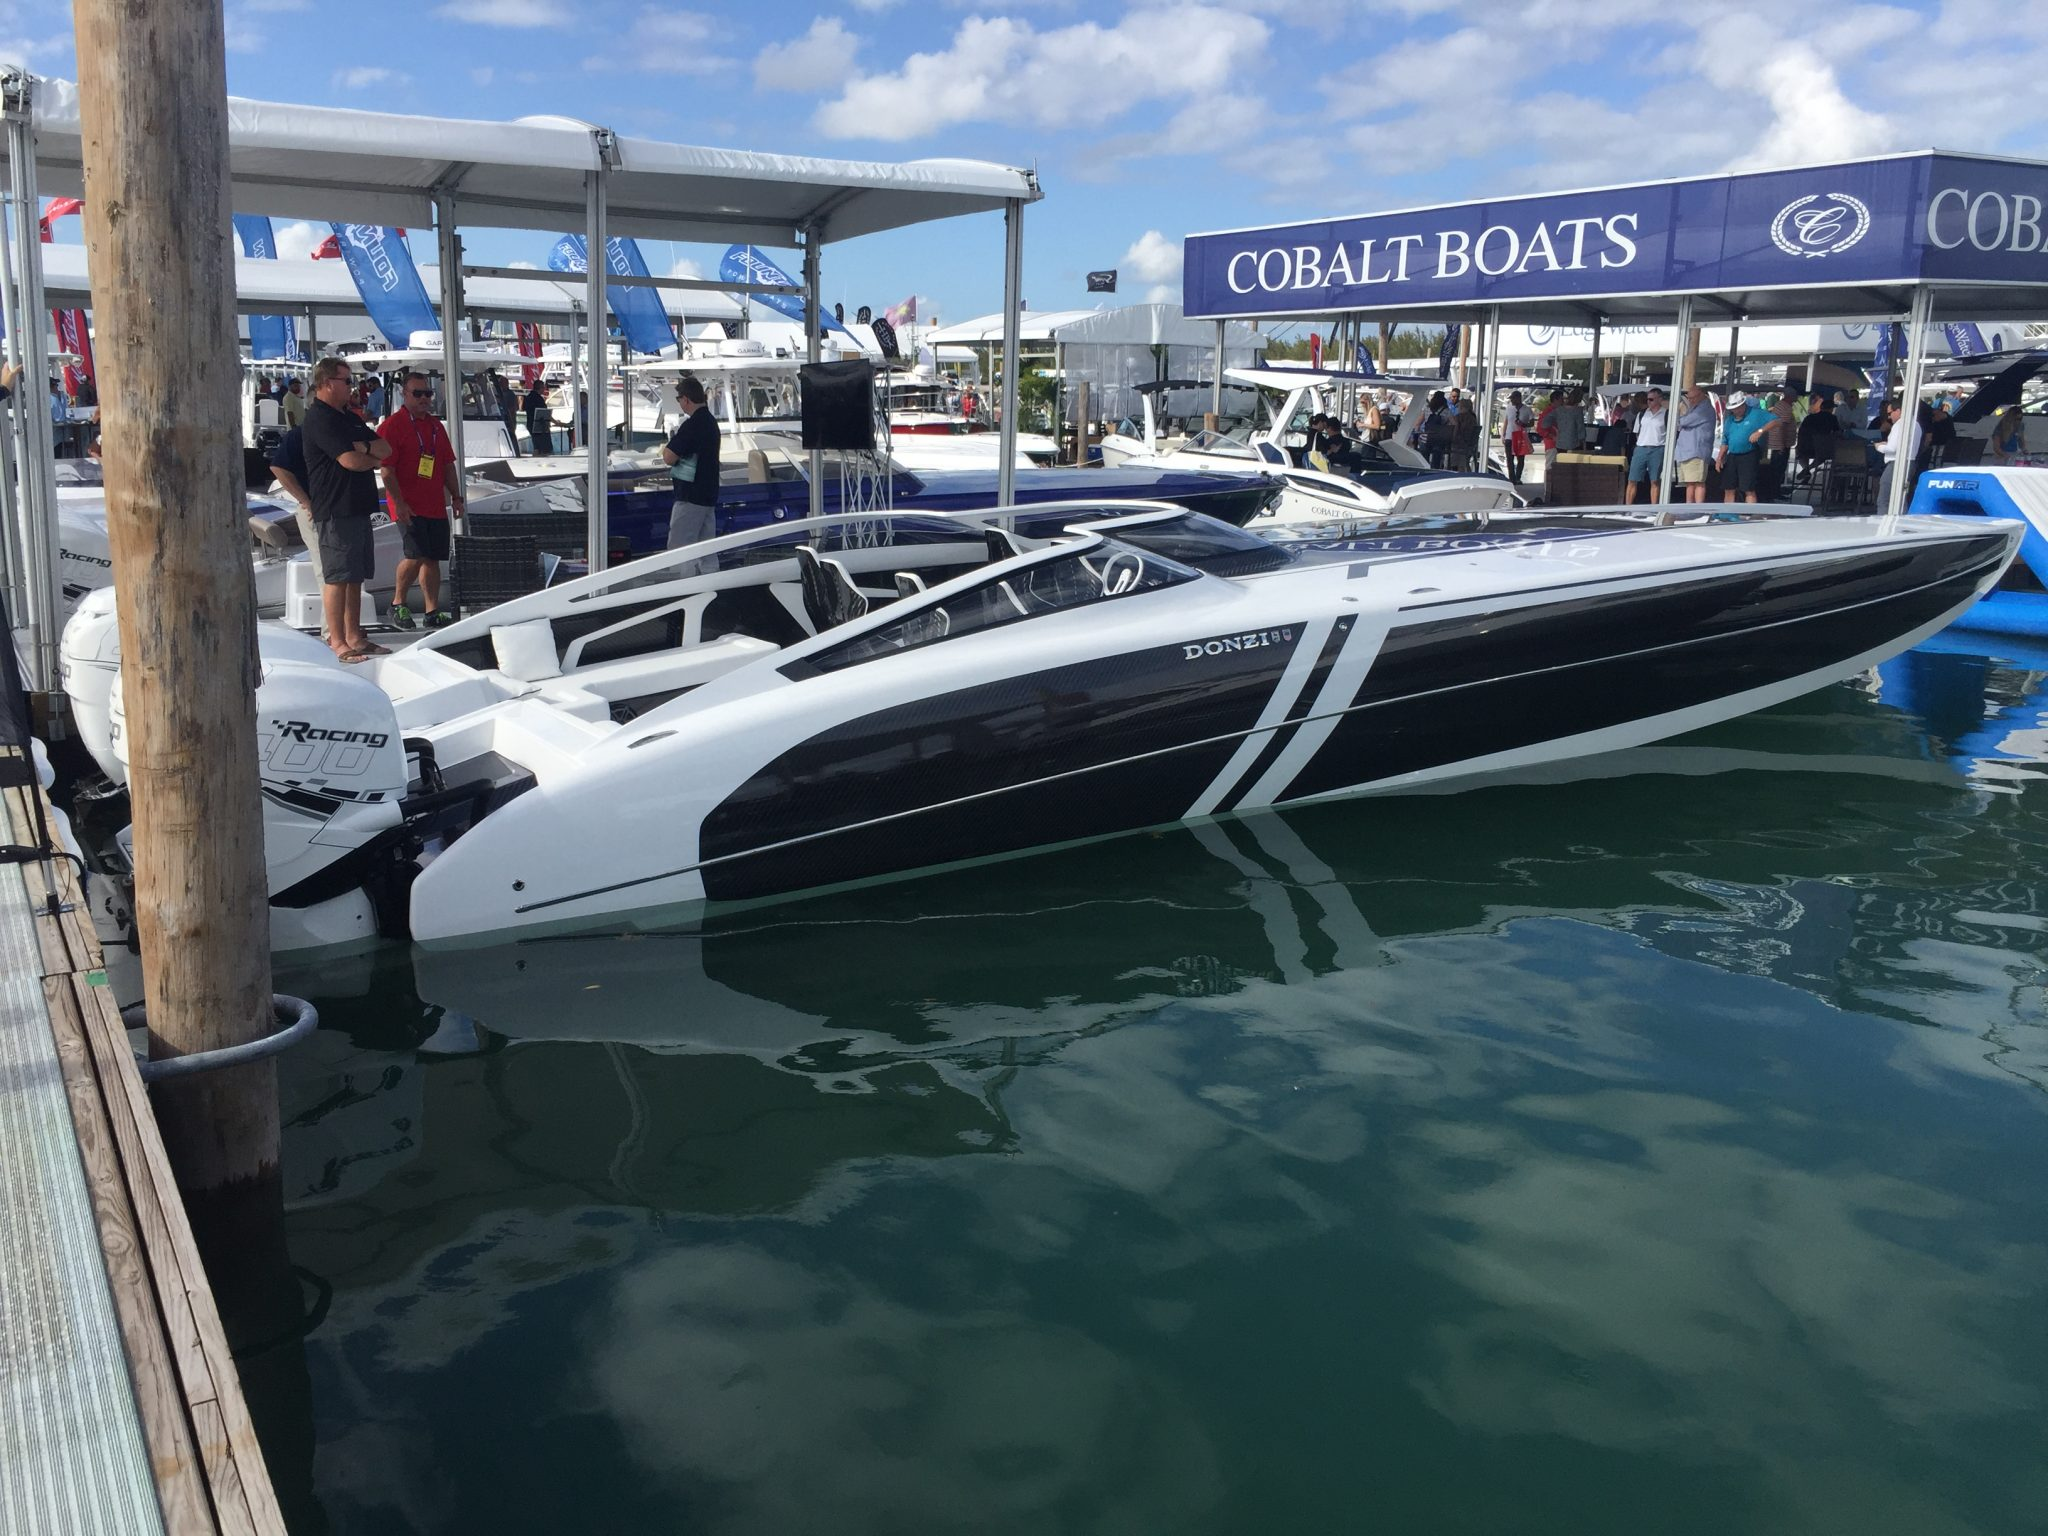 MIAMI SHOW: The Best of the New Stuff - Powerboat Nation